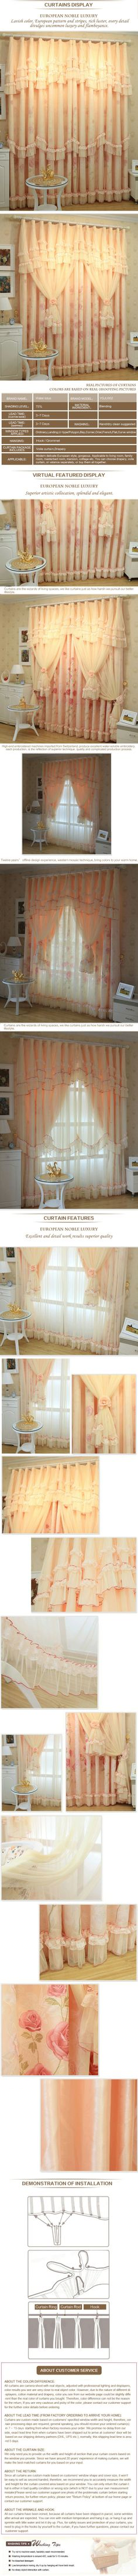 luxurious window curtain - Water Lotus $120  (55% off)